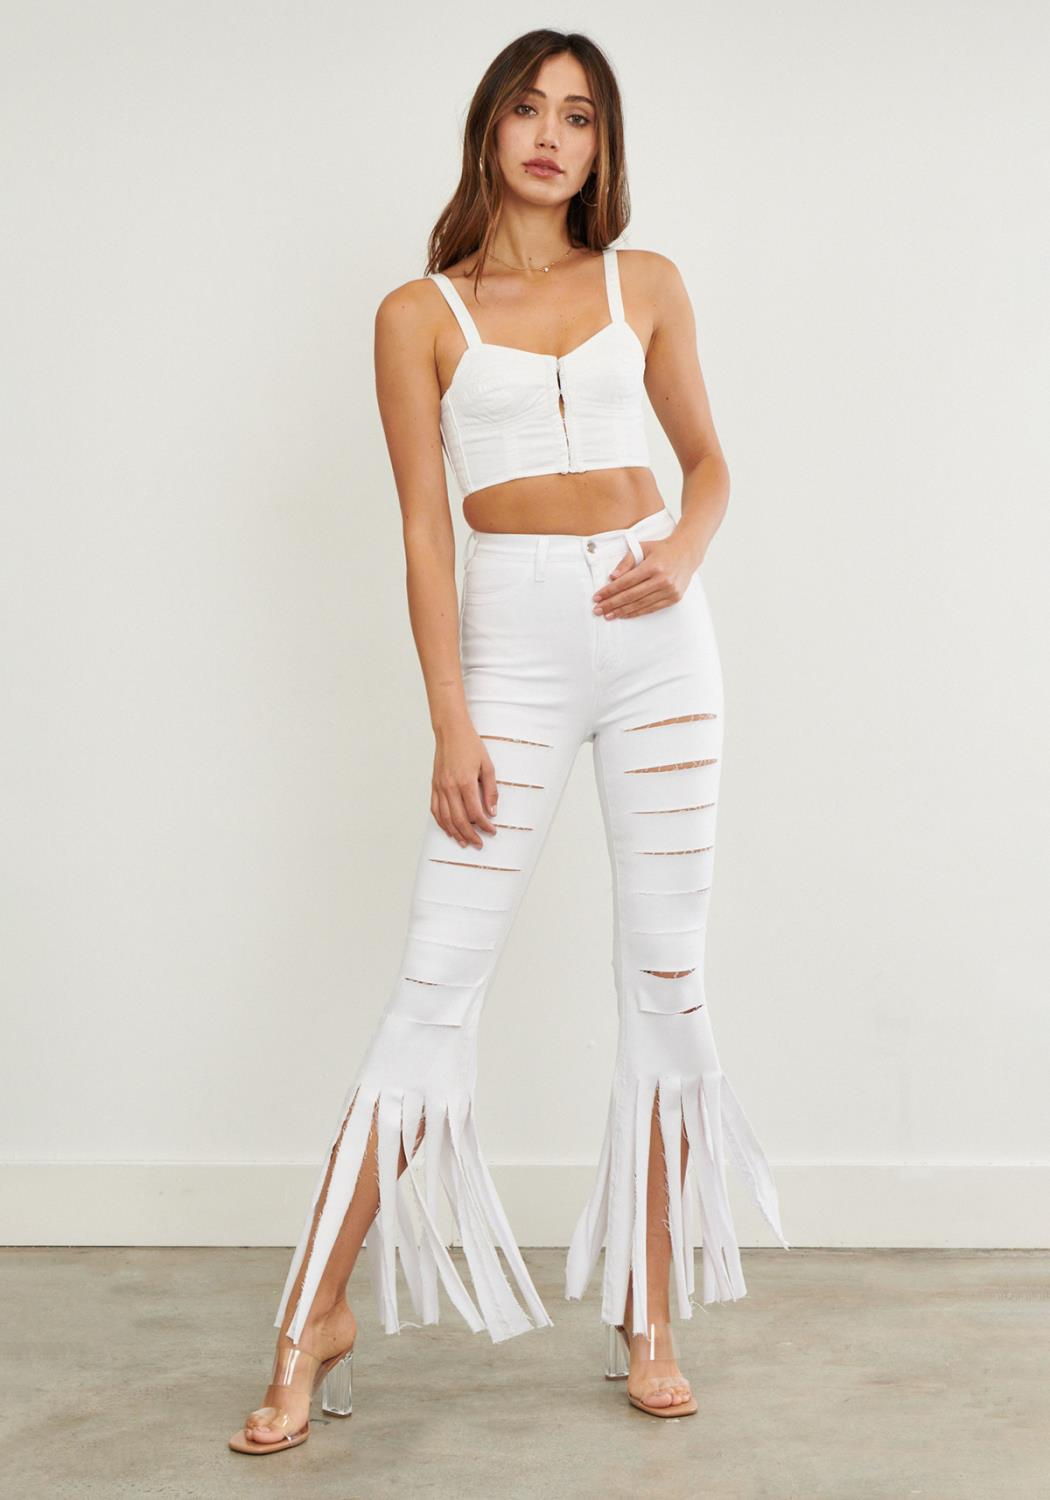 Rave Cutout Flare Jeans